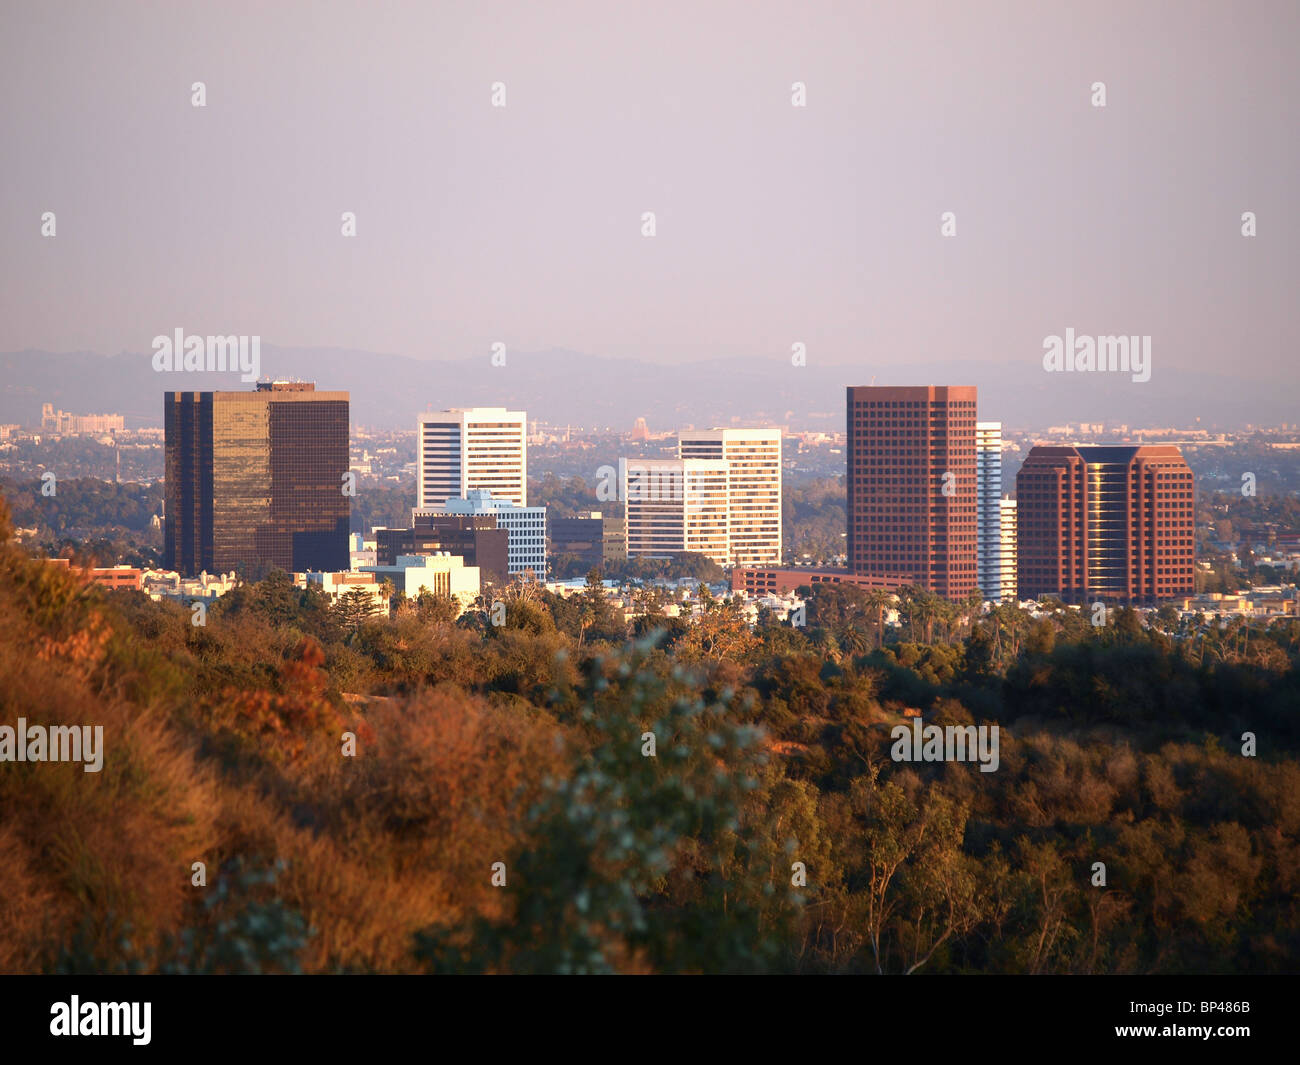 Medium sized buildings rise above an Urban Forest in Southern California. - Stock Image